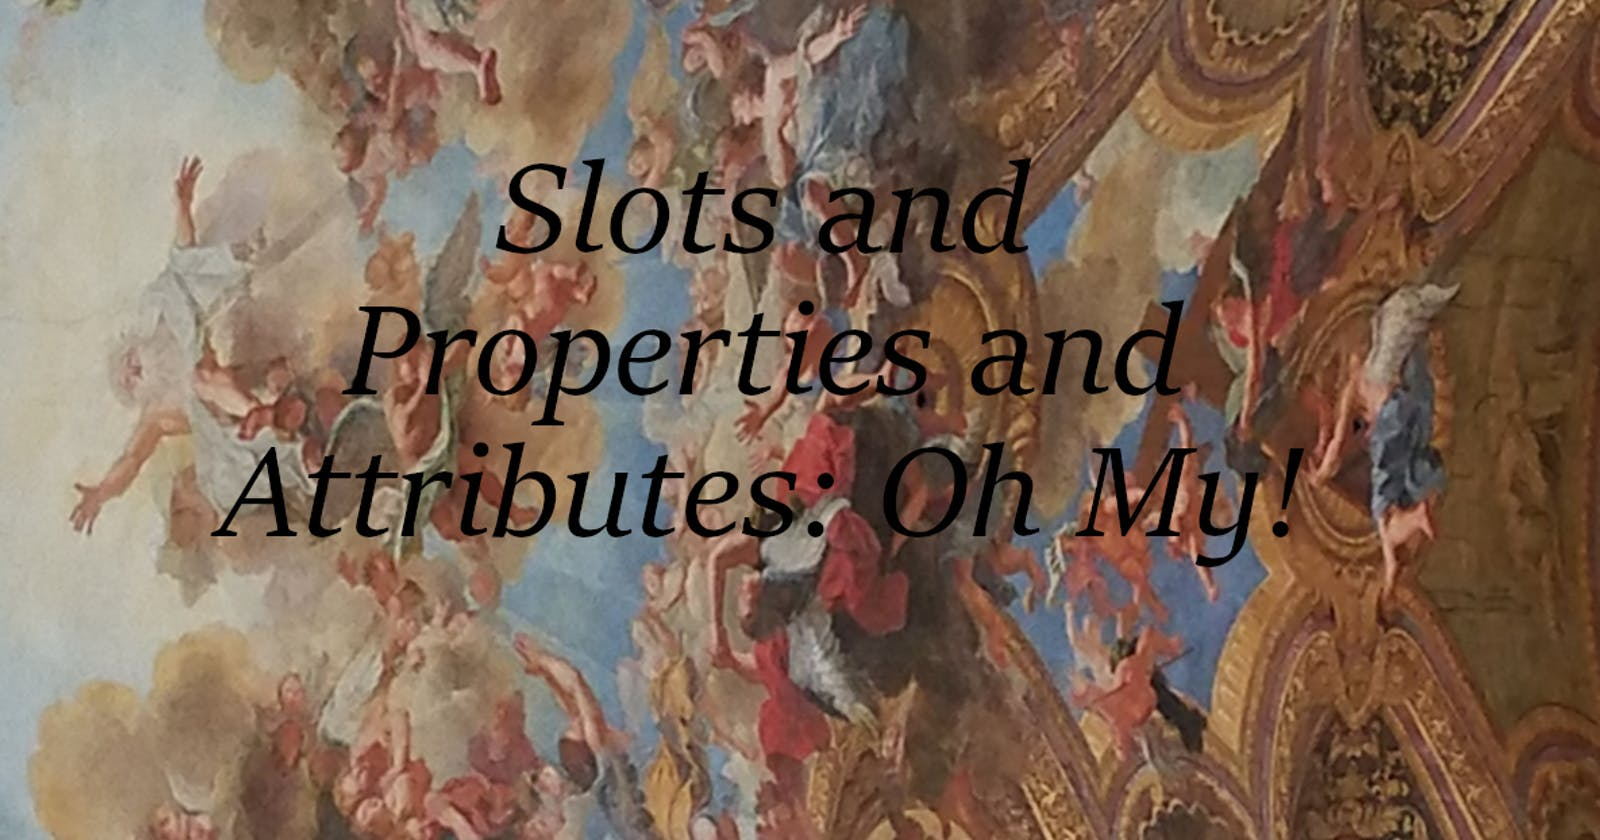 Slots and Properties and Attributes, Oh My!